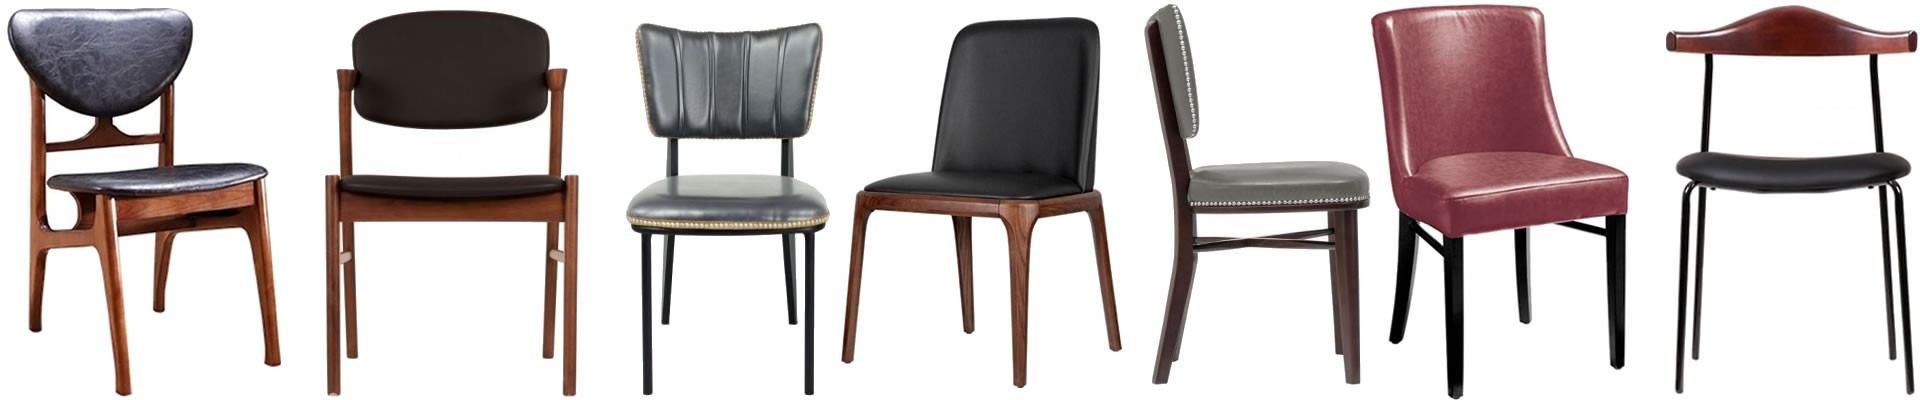 Faux Leather Dining Chairs |Grey, Black, White, Brown, Cream & More